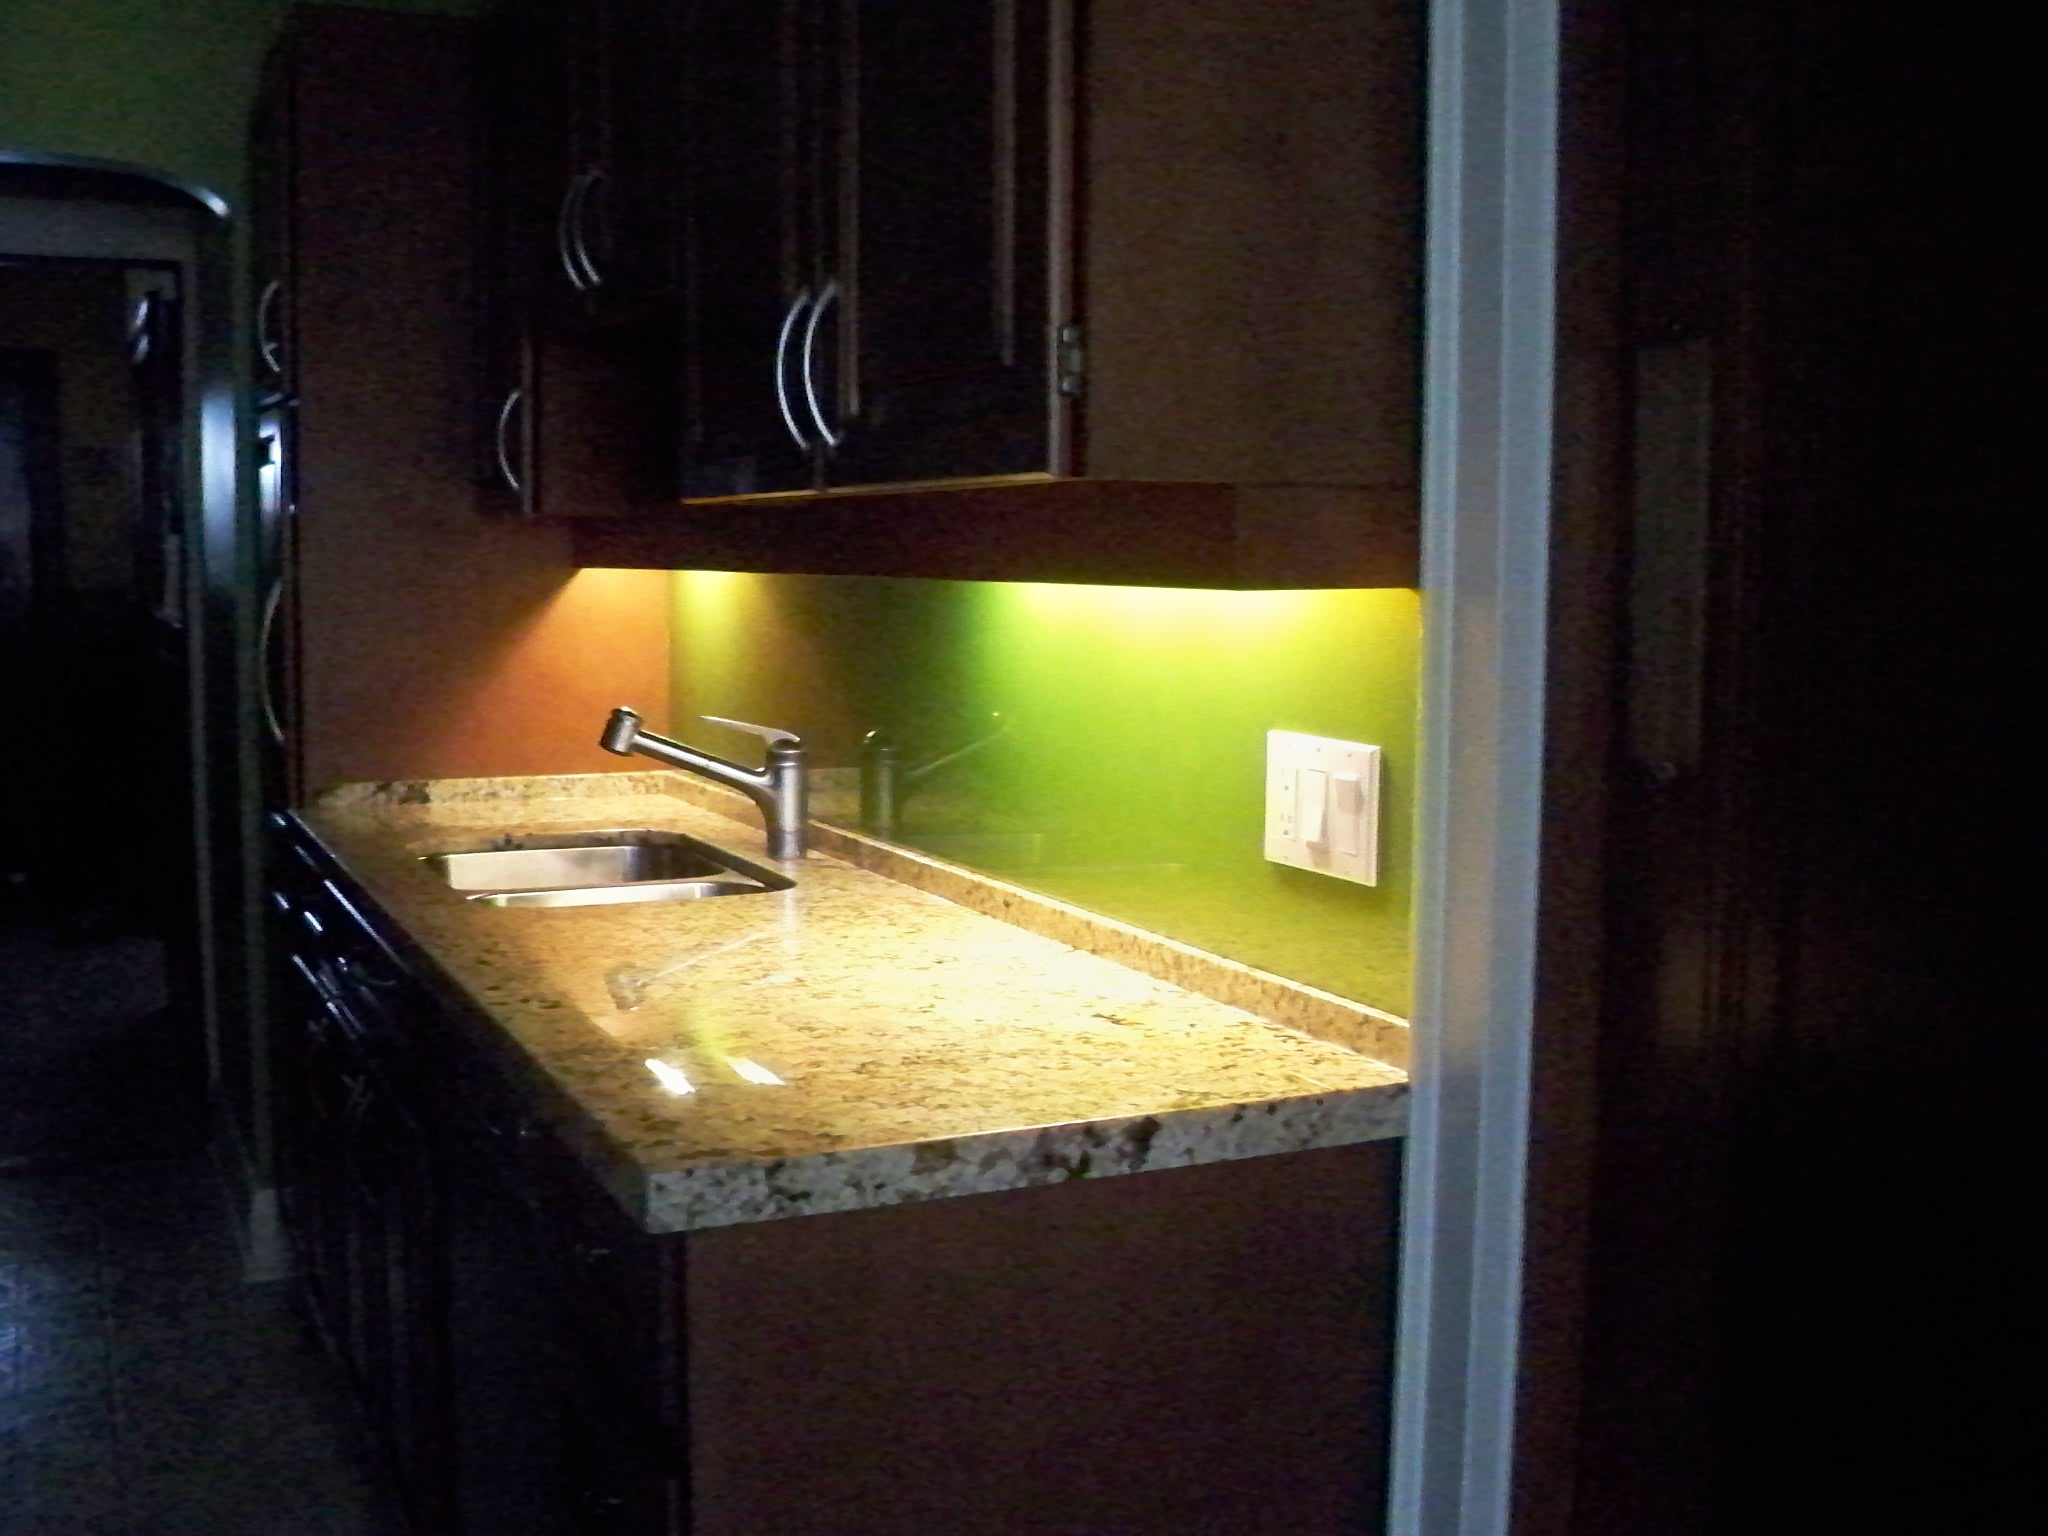 Kitchen Backsplash 3 2011.jpg